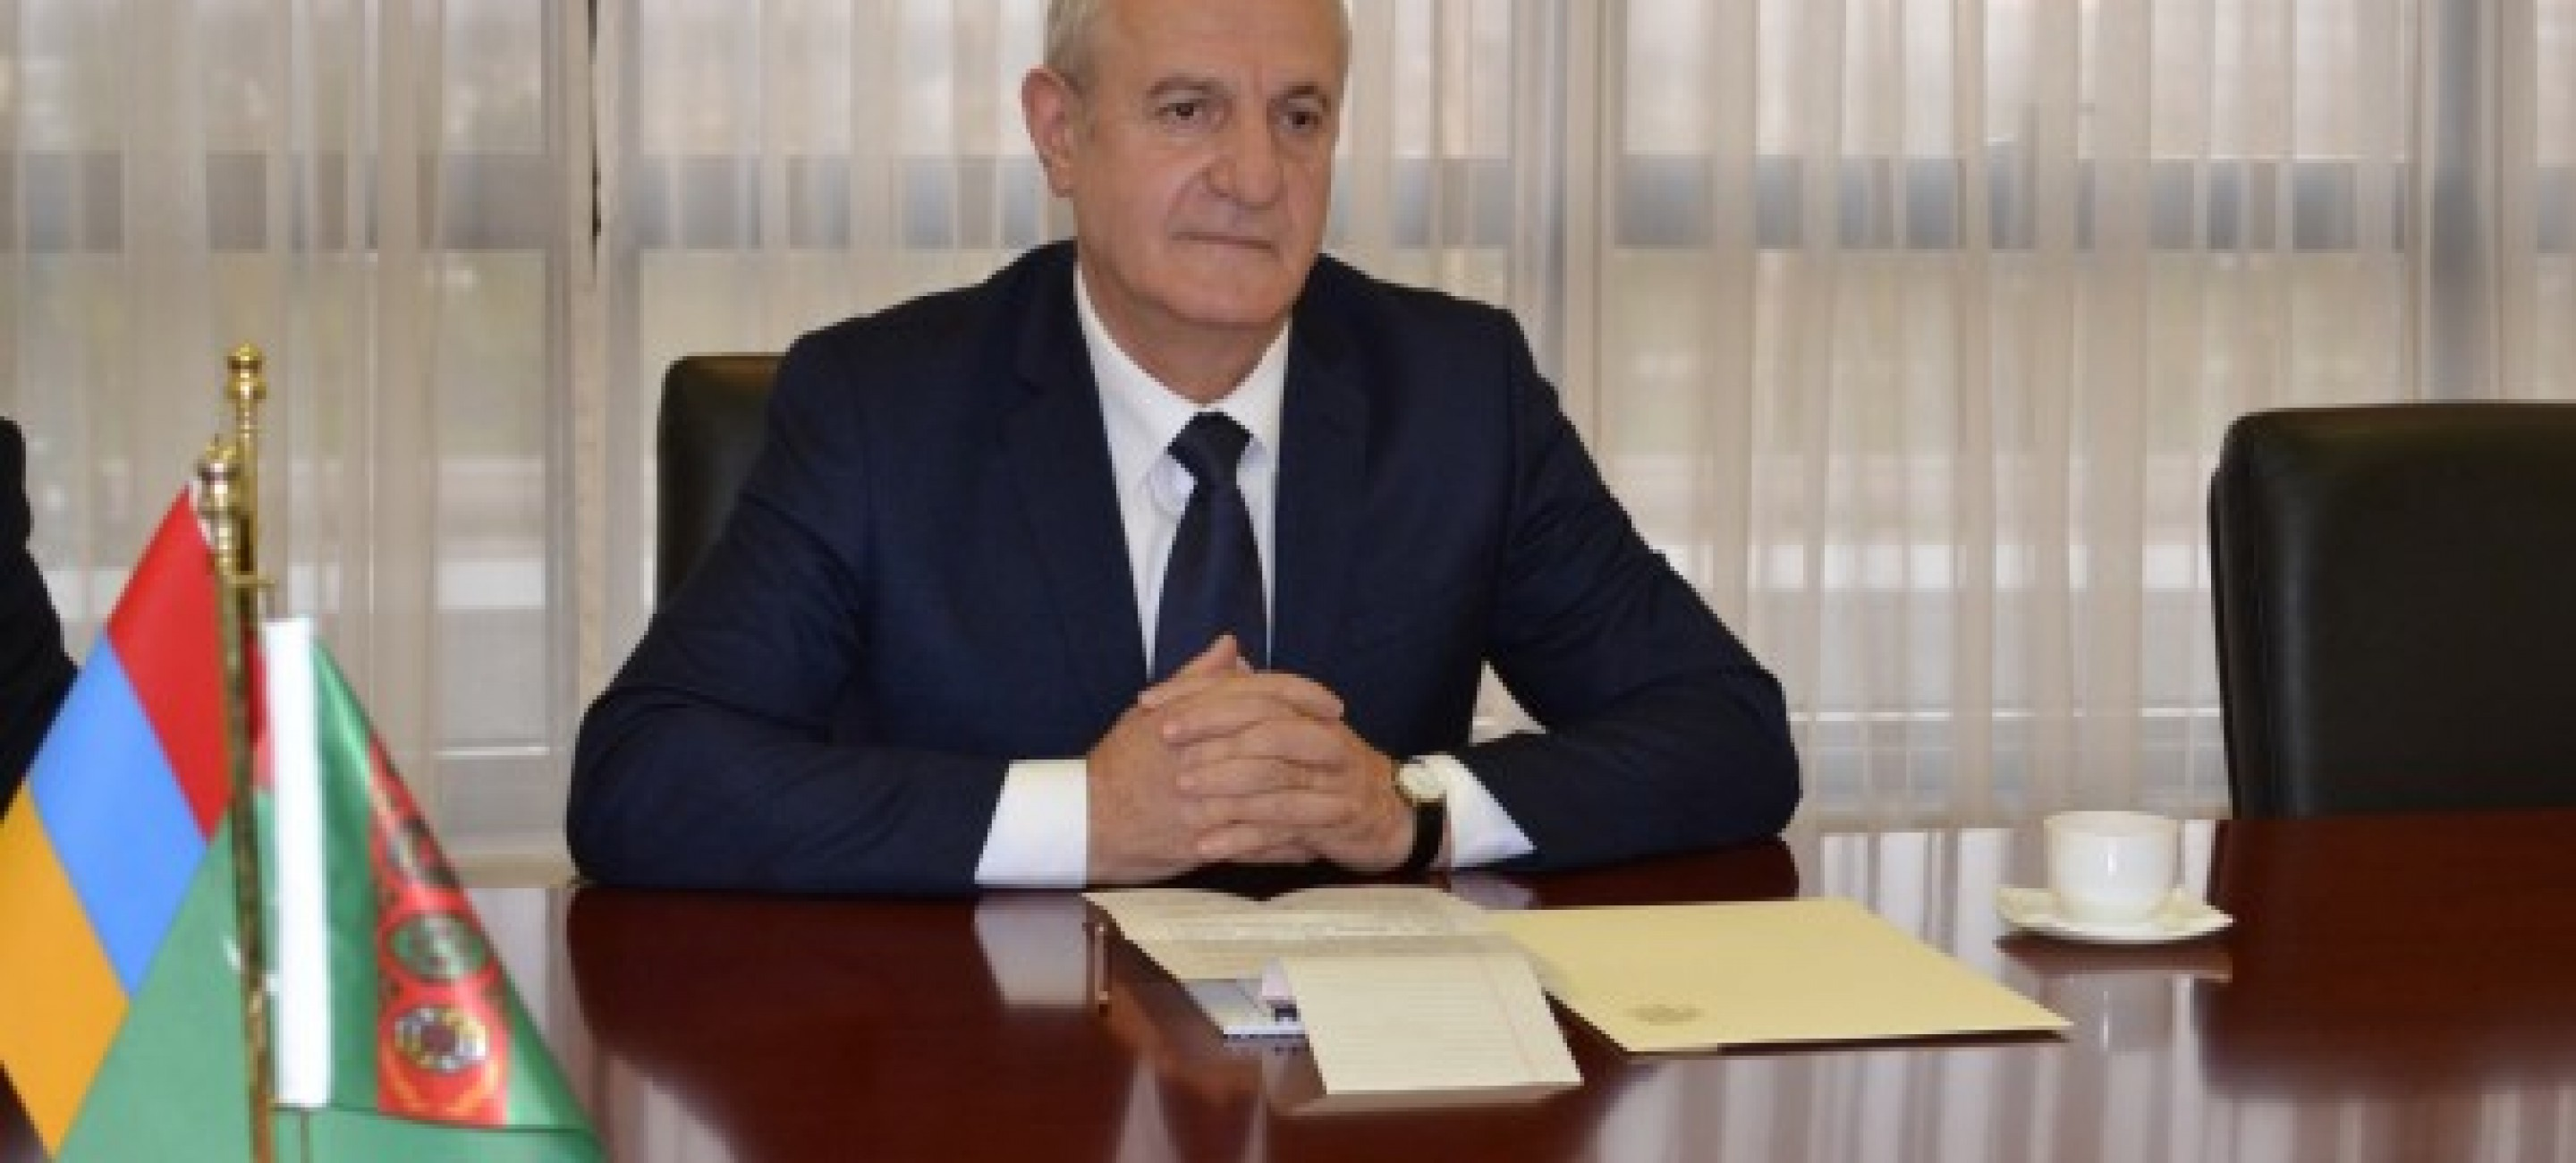 AMBASSADOR OF THE REPUBLIC OF ARMENIA PRESENTED COPIES OF HIS CREDENTIALS